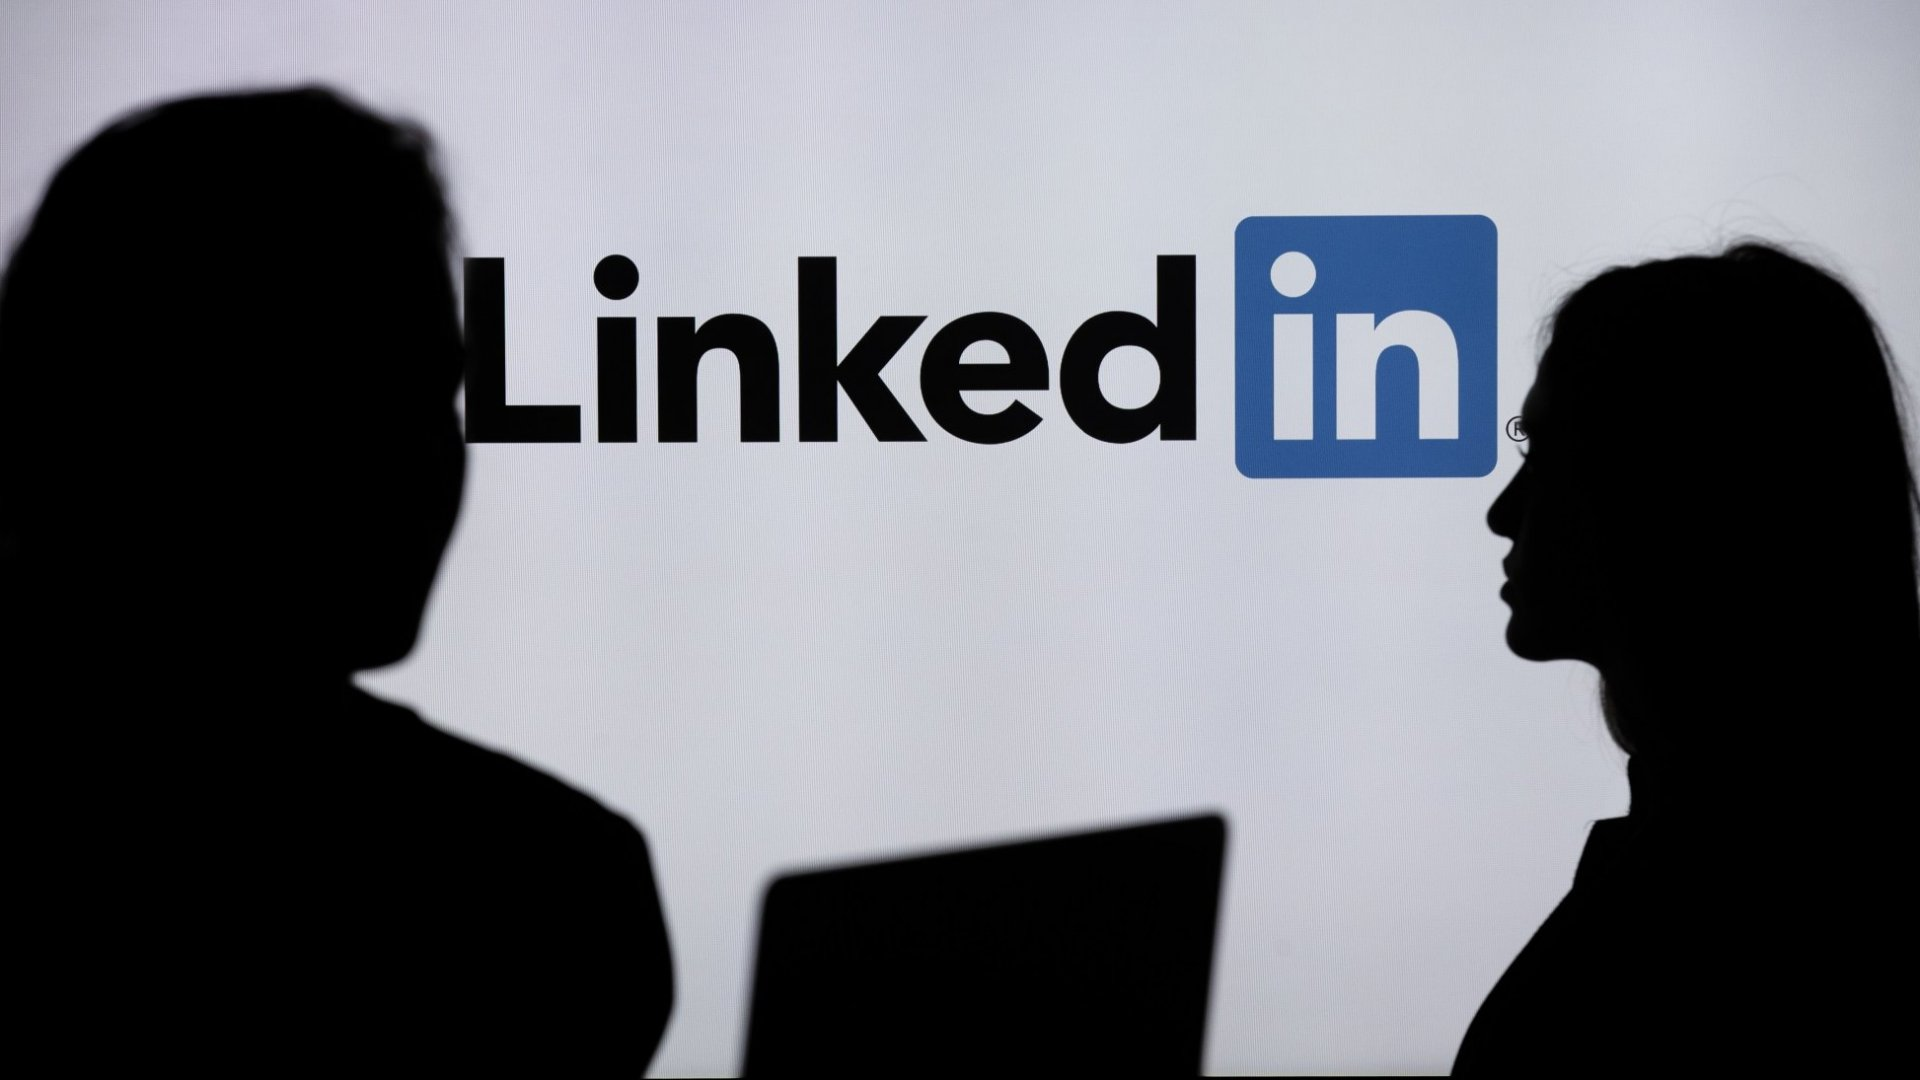 LinkedIn Is Subtly Experimenting With a New Feature That Could Drastically Impact What Content We Read